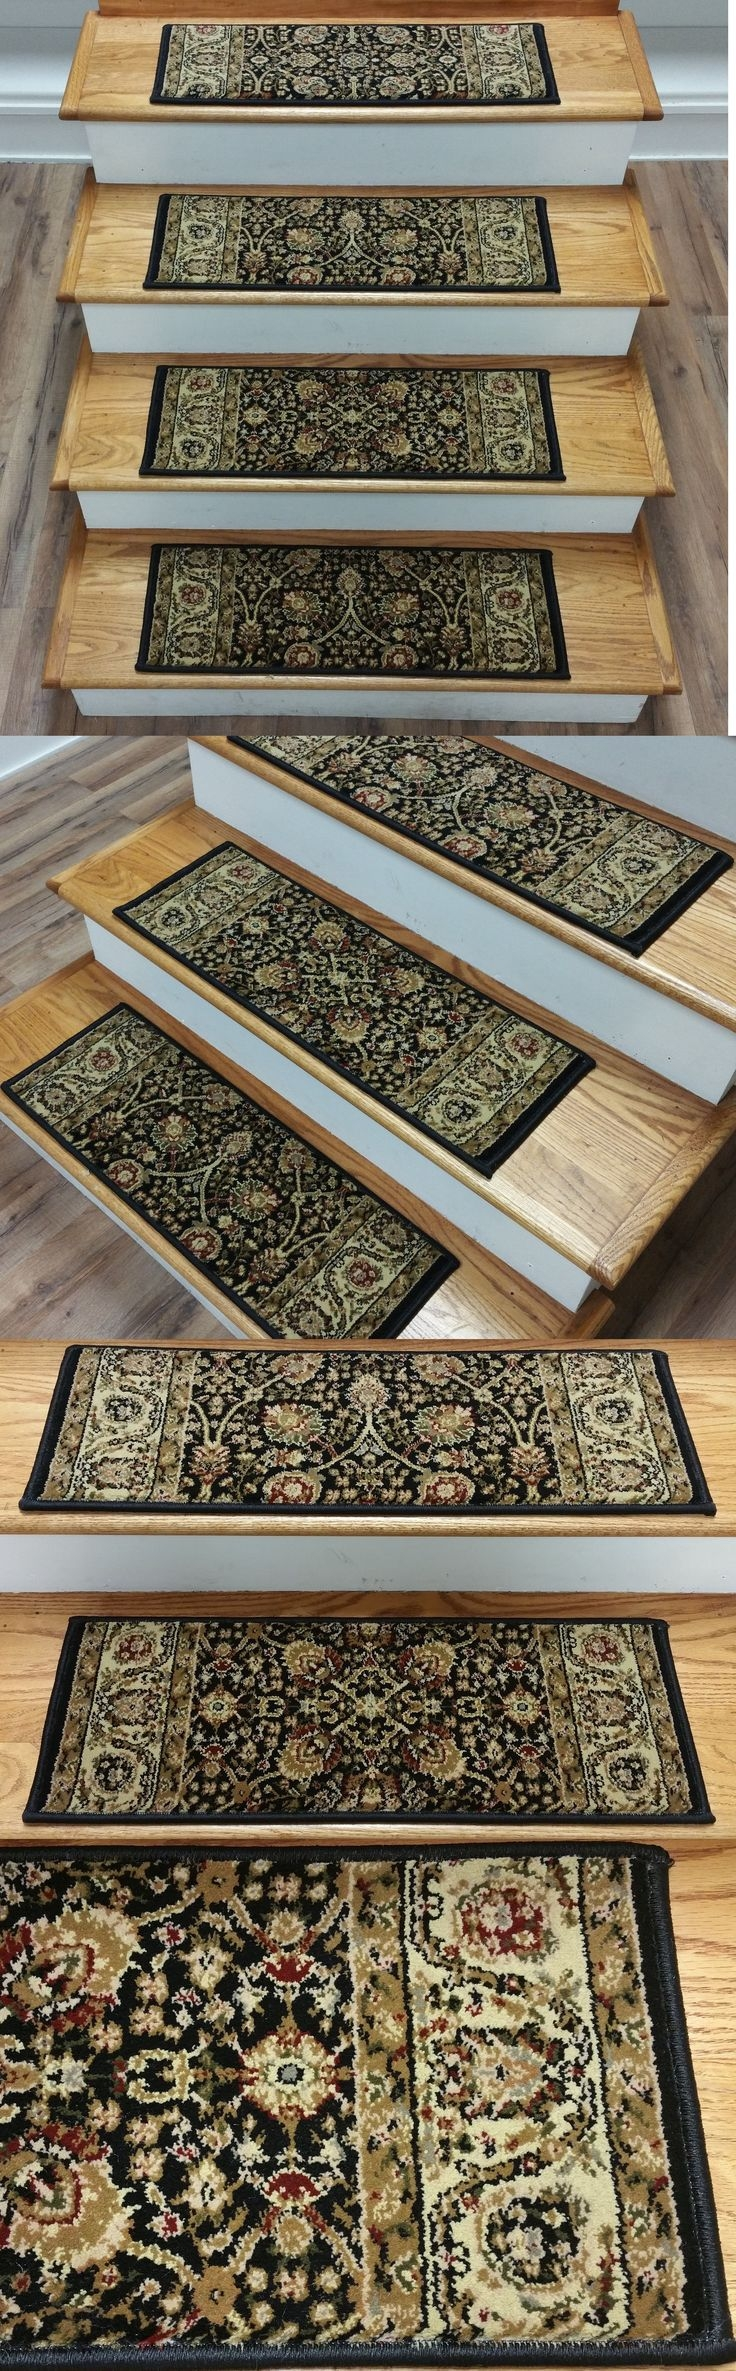 Best 25 Traditional Stair Tread Rugs Ideas Only On Pinterest Intended For Basket Weave Washable Indoor Stair Tread Rugs (#15 of 20)